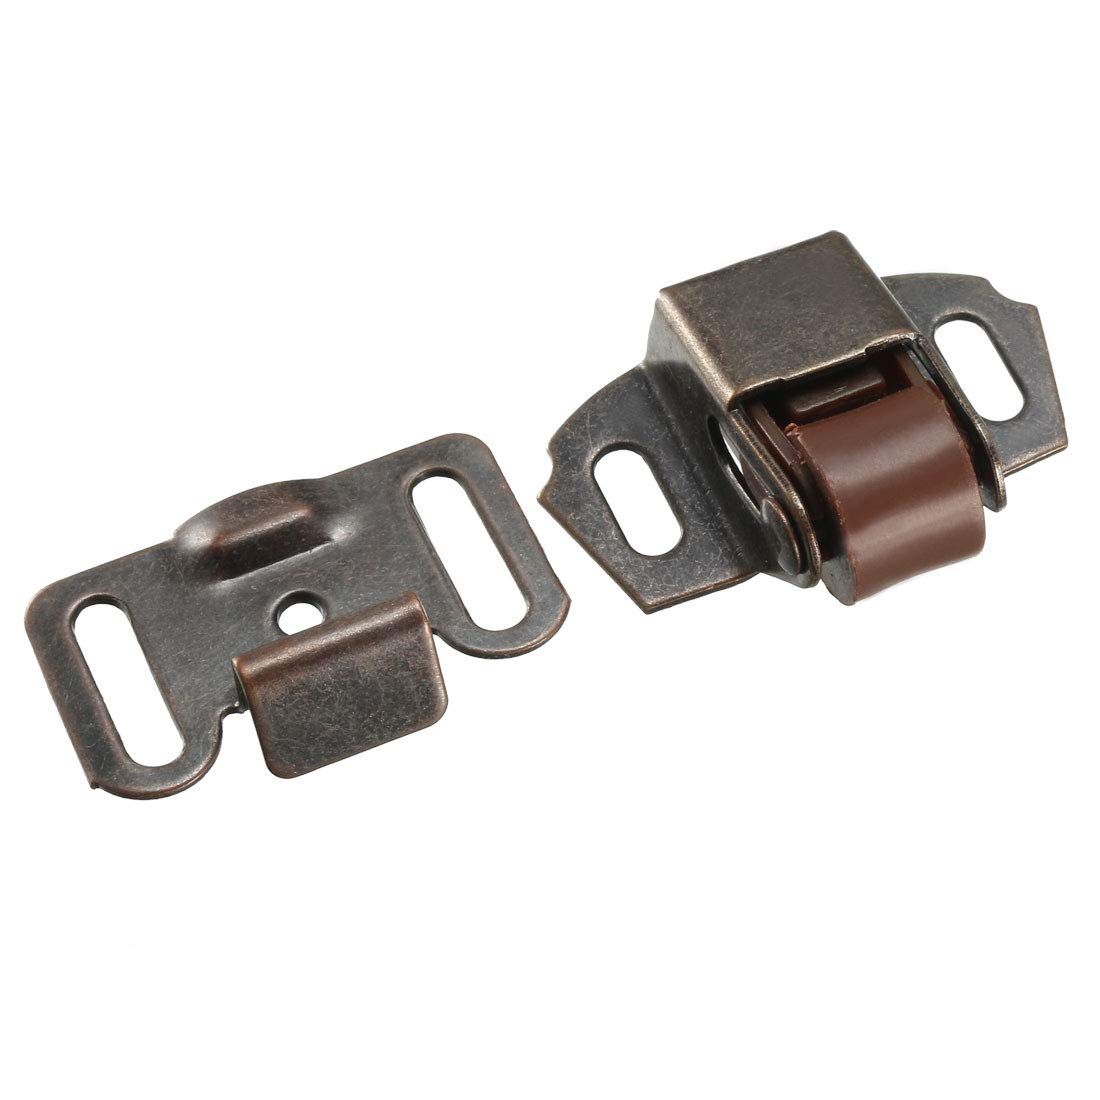 uxcell Wardrobe Door Ball Roller Catch Latch Copper Tone 5pcs US-SA-AJD-147231